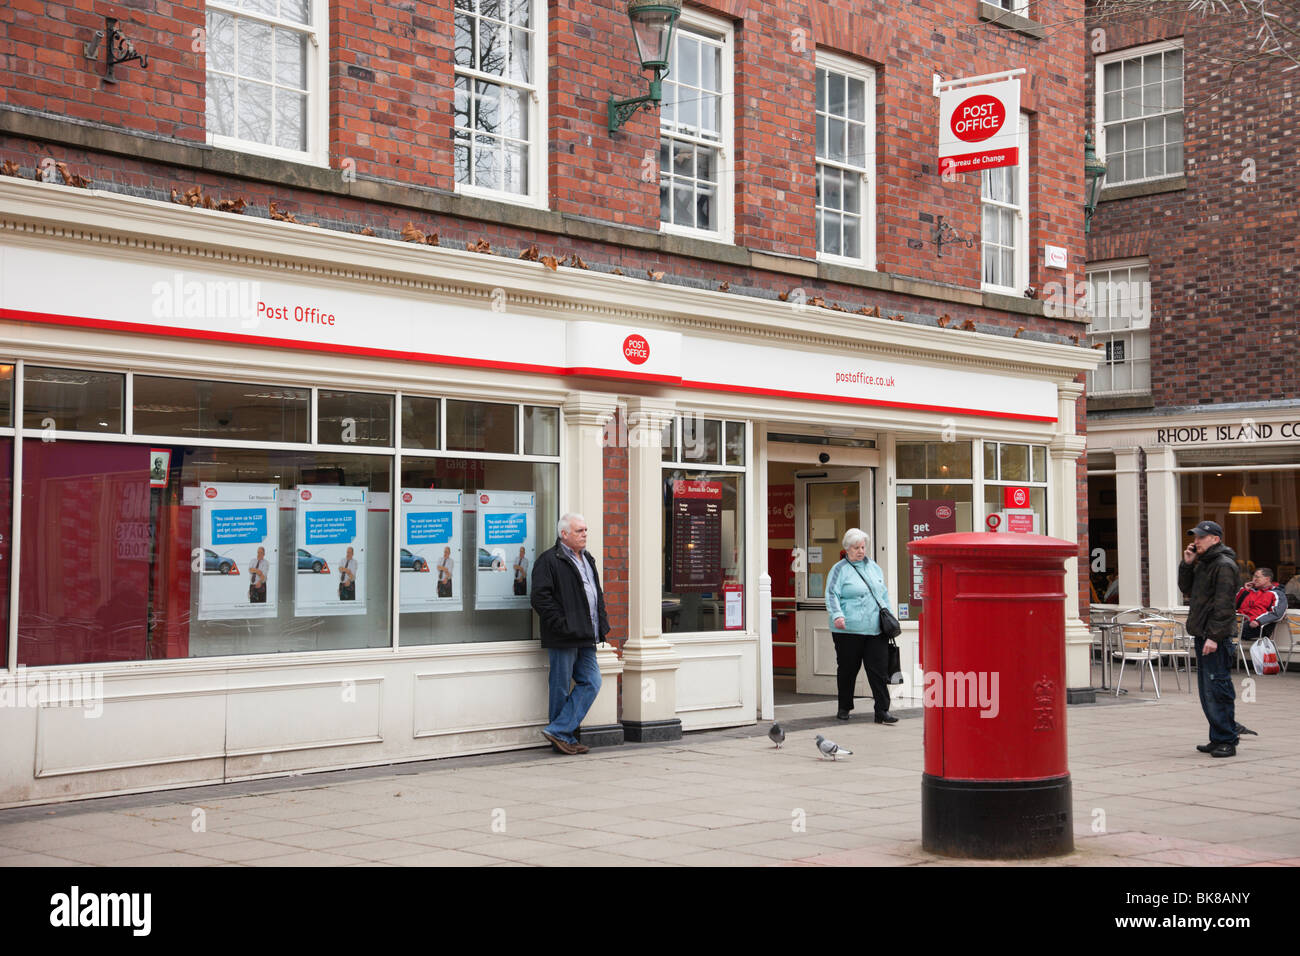 Street scene outside a Post Office with postbox with people. Warrington, Cheshire, England, UK. - Stock Image